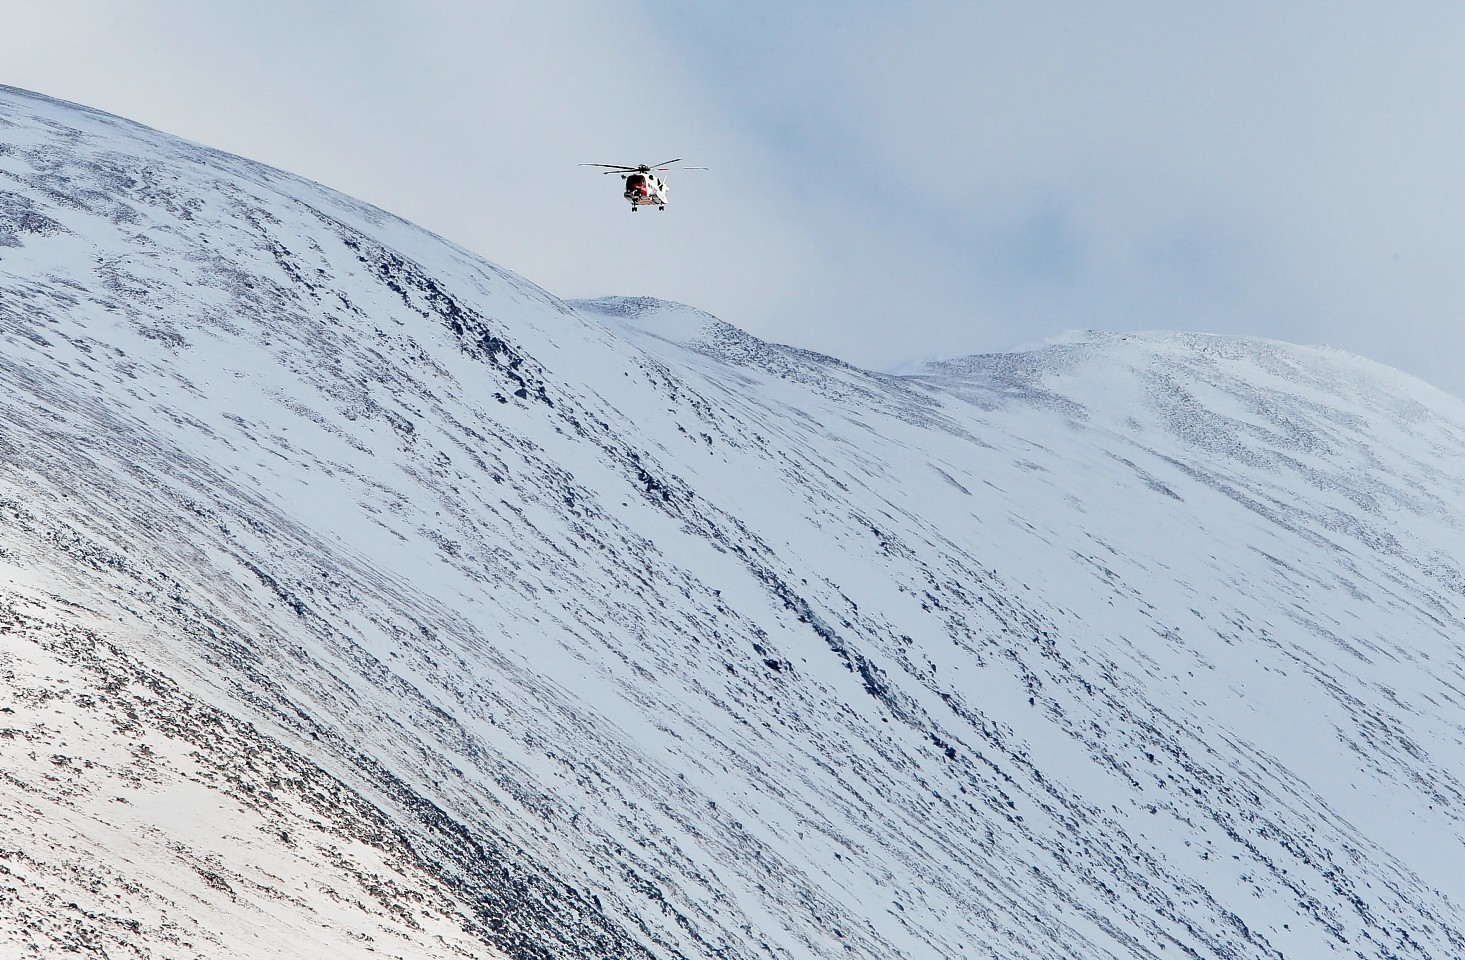 The helicopter was searching Ben Nevis for missing climbers when it was called away